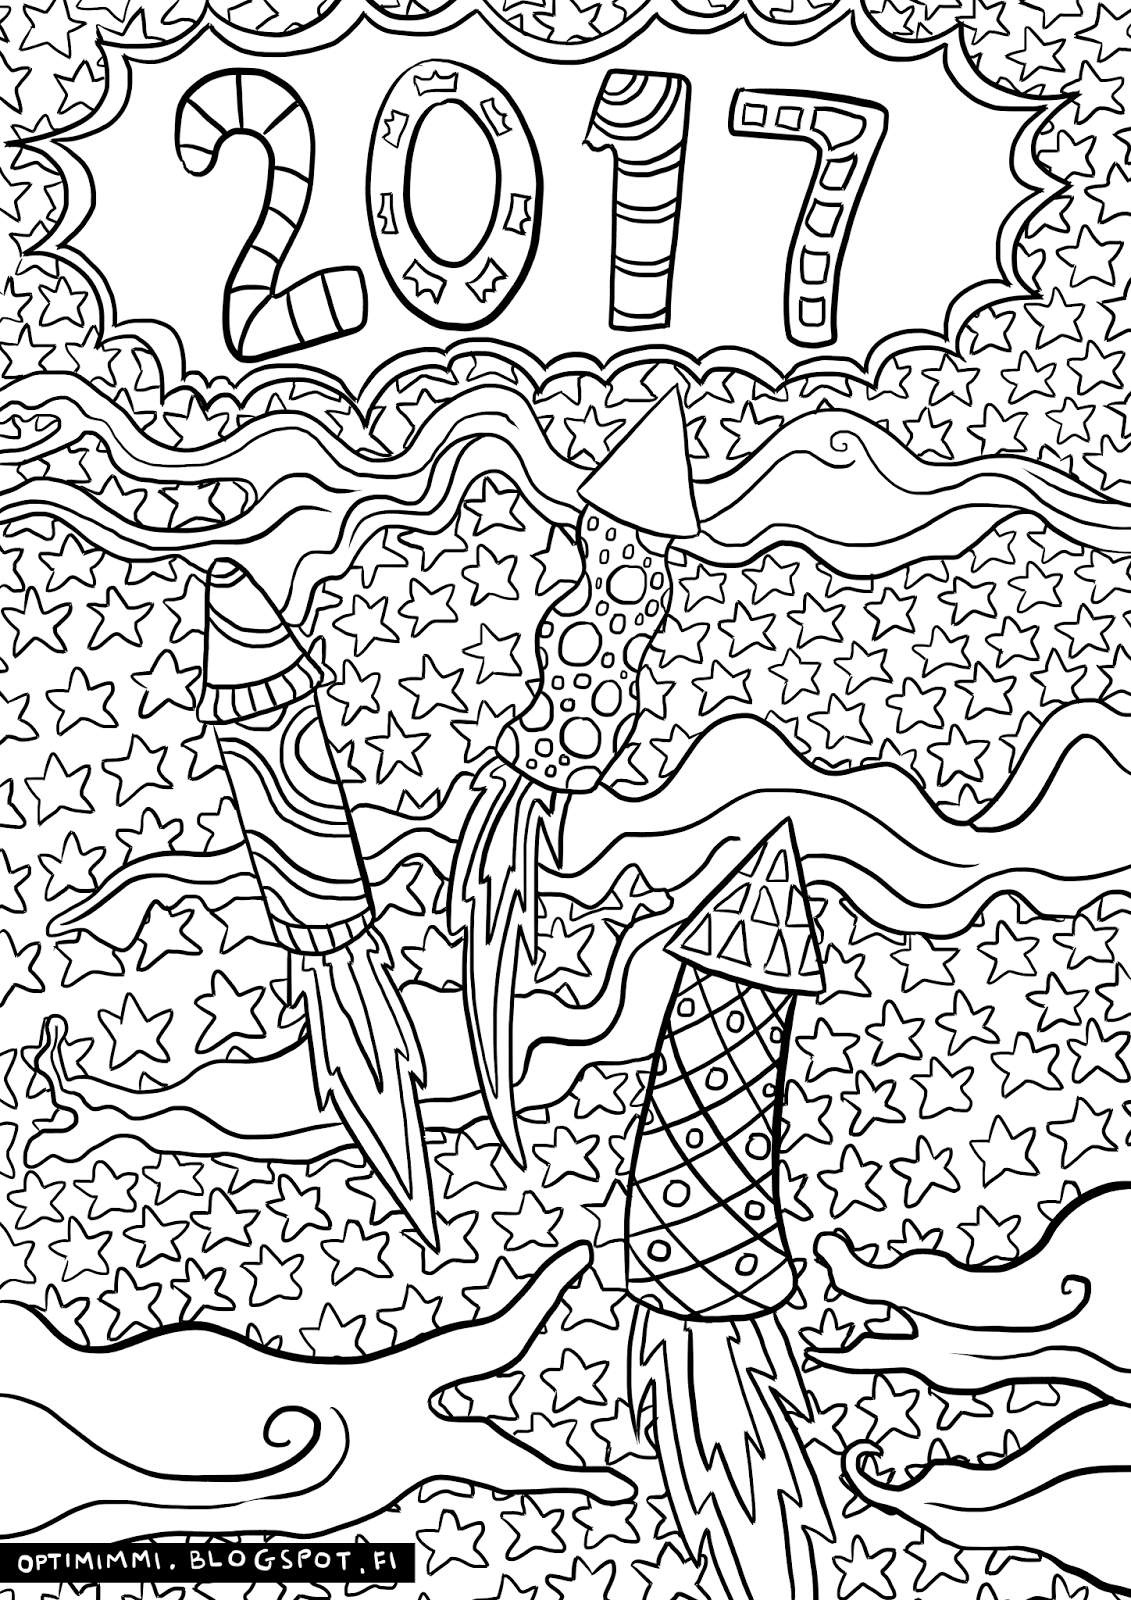 new years eve coloring pages - photo#31